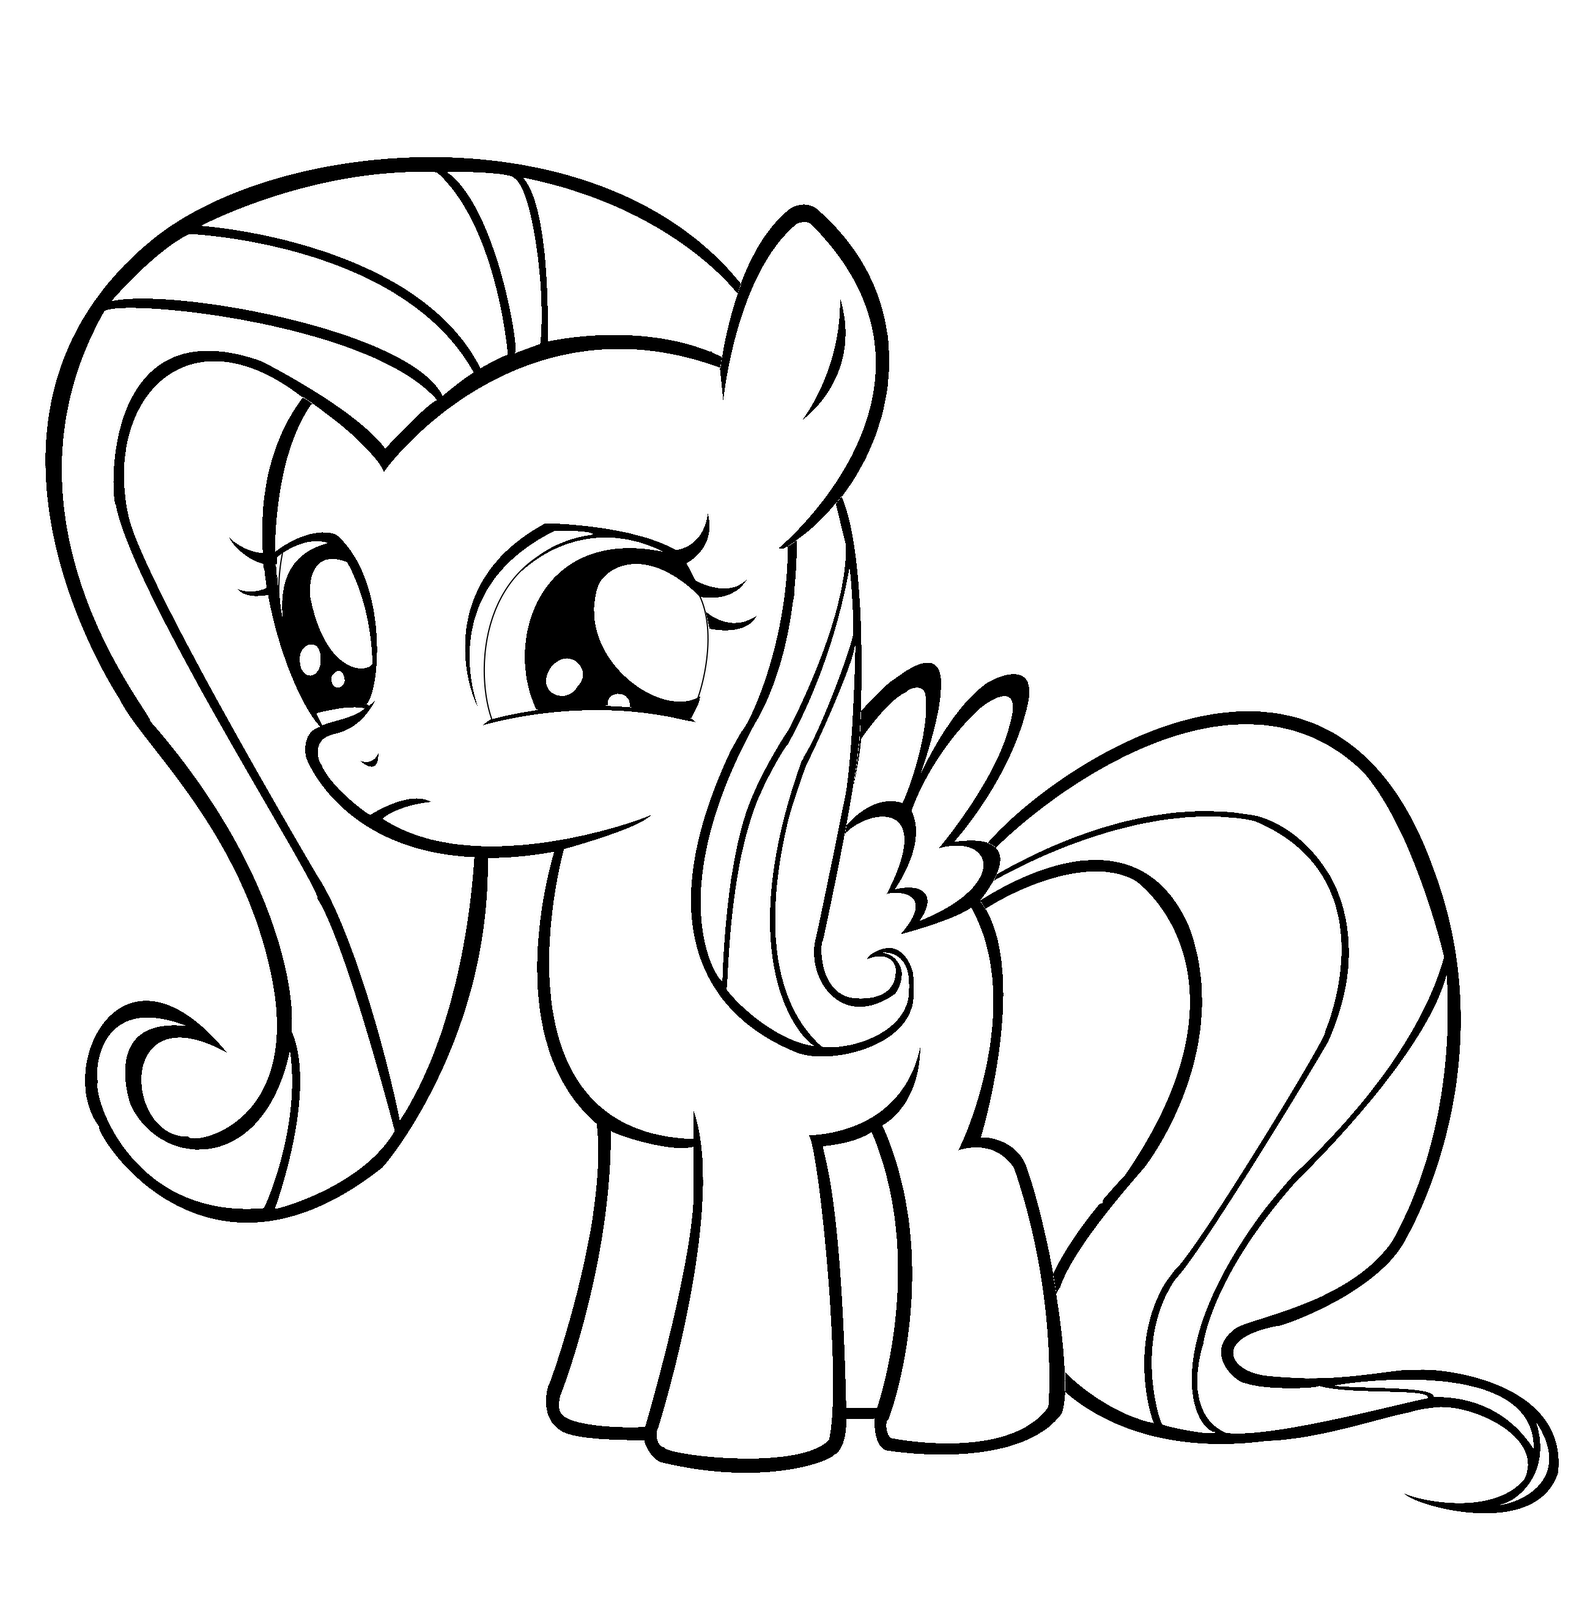 mlp pictures my little pony coloring pages squid army mlp pictures